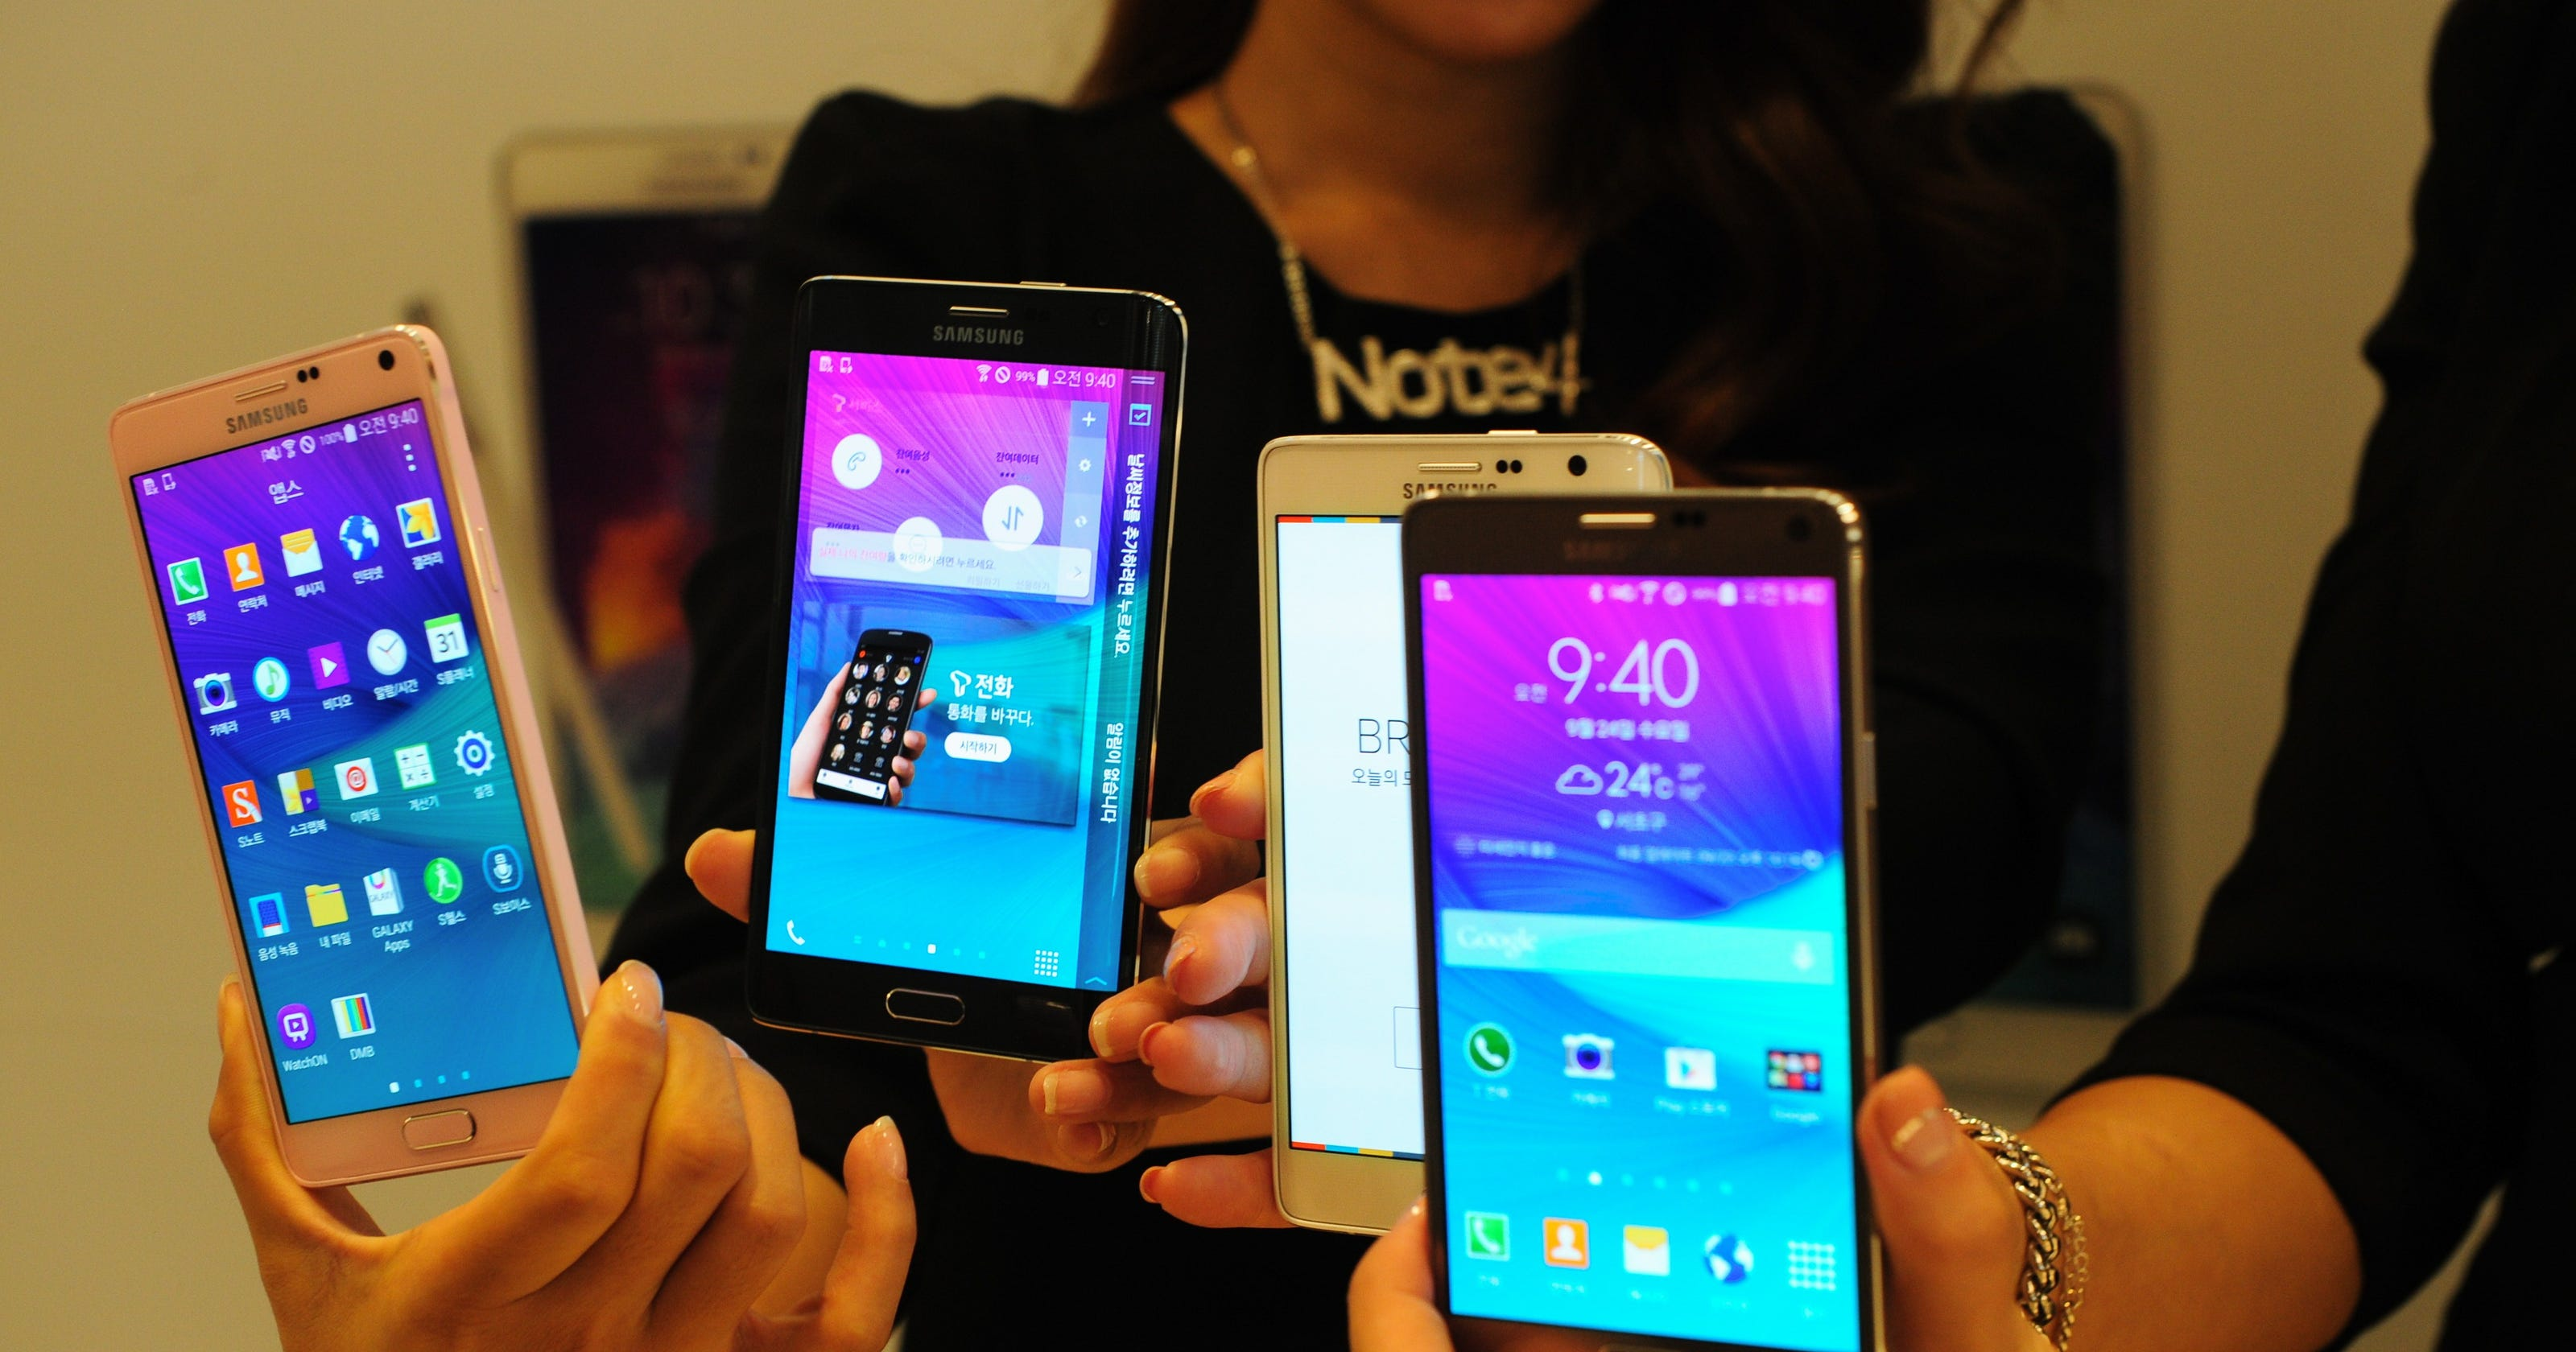 Samsung says profit to fall 60% as smartphone share slips